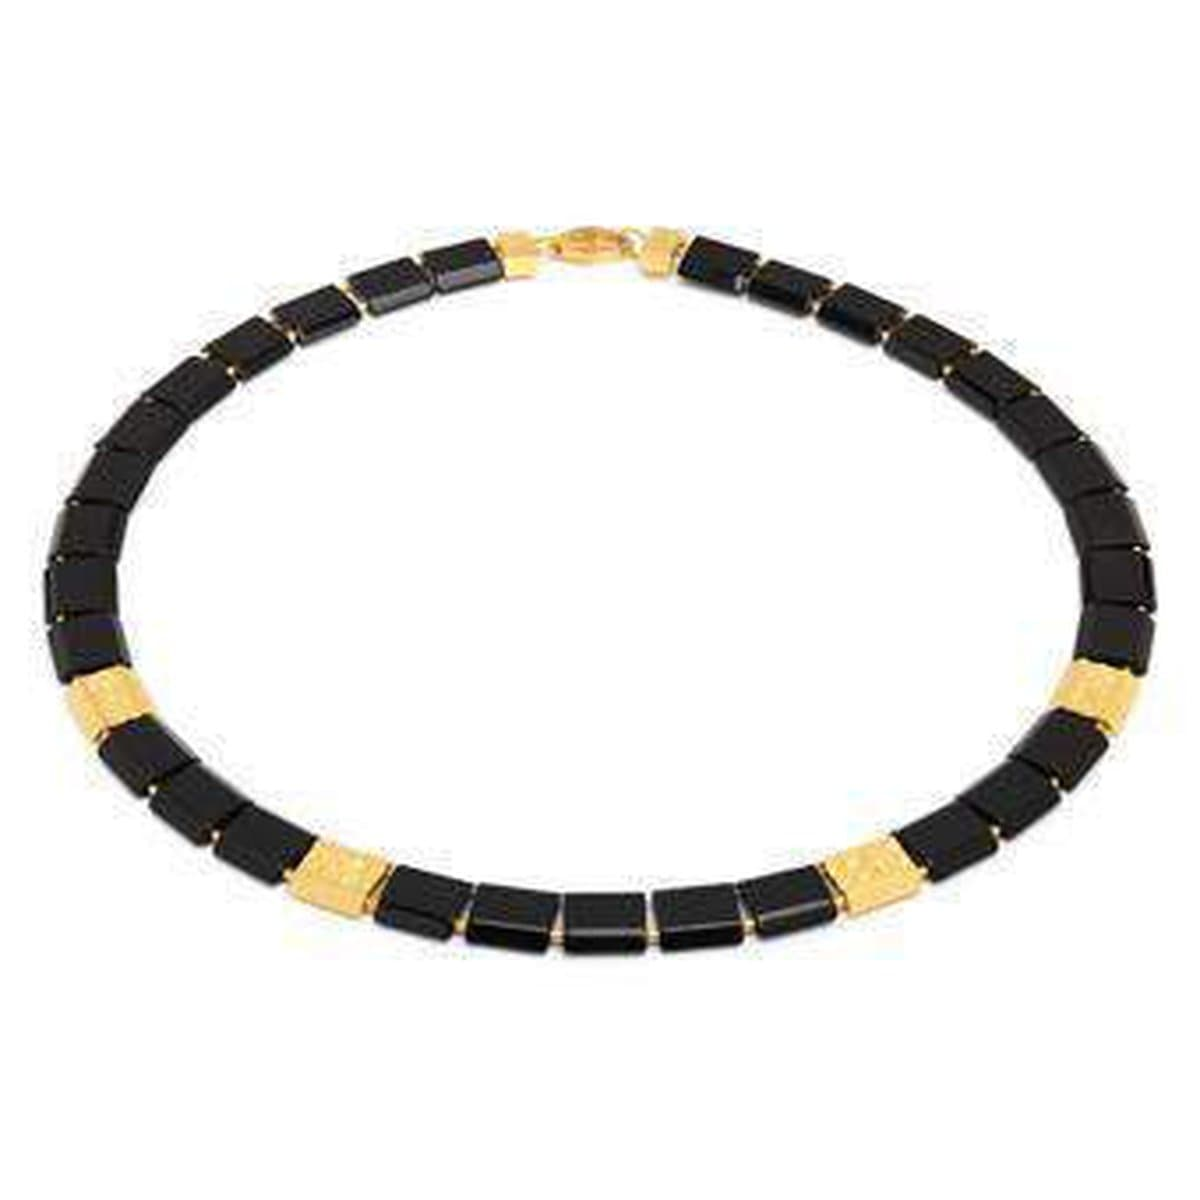 Flavette Onyx Necklace - 84880896